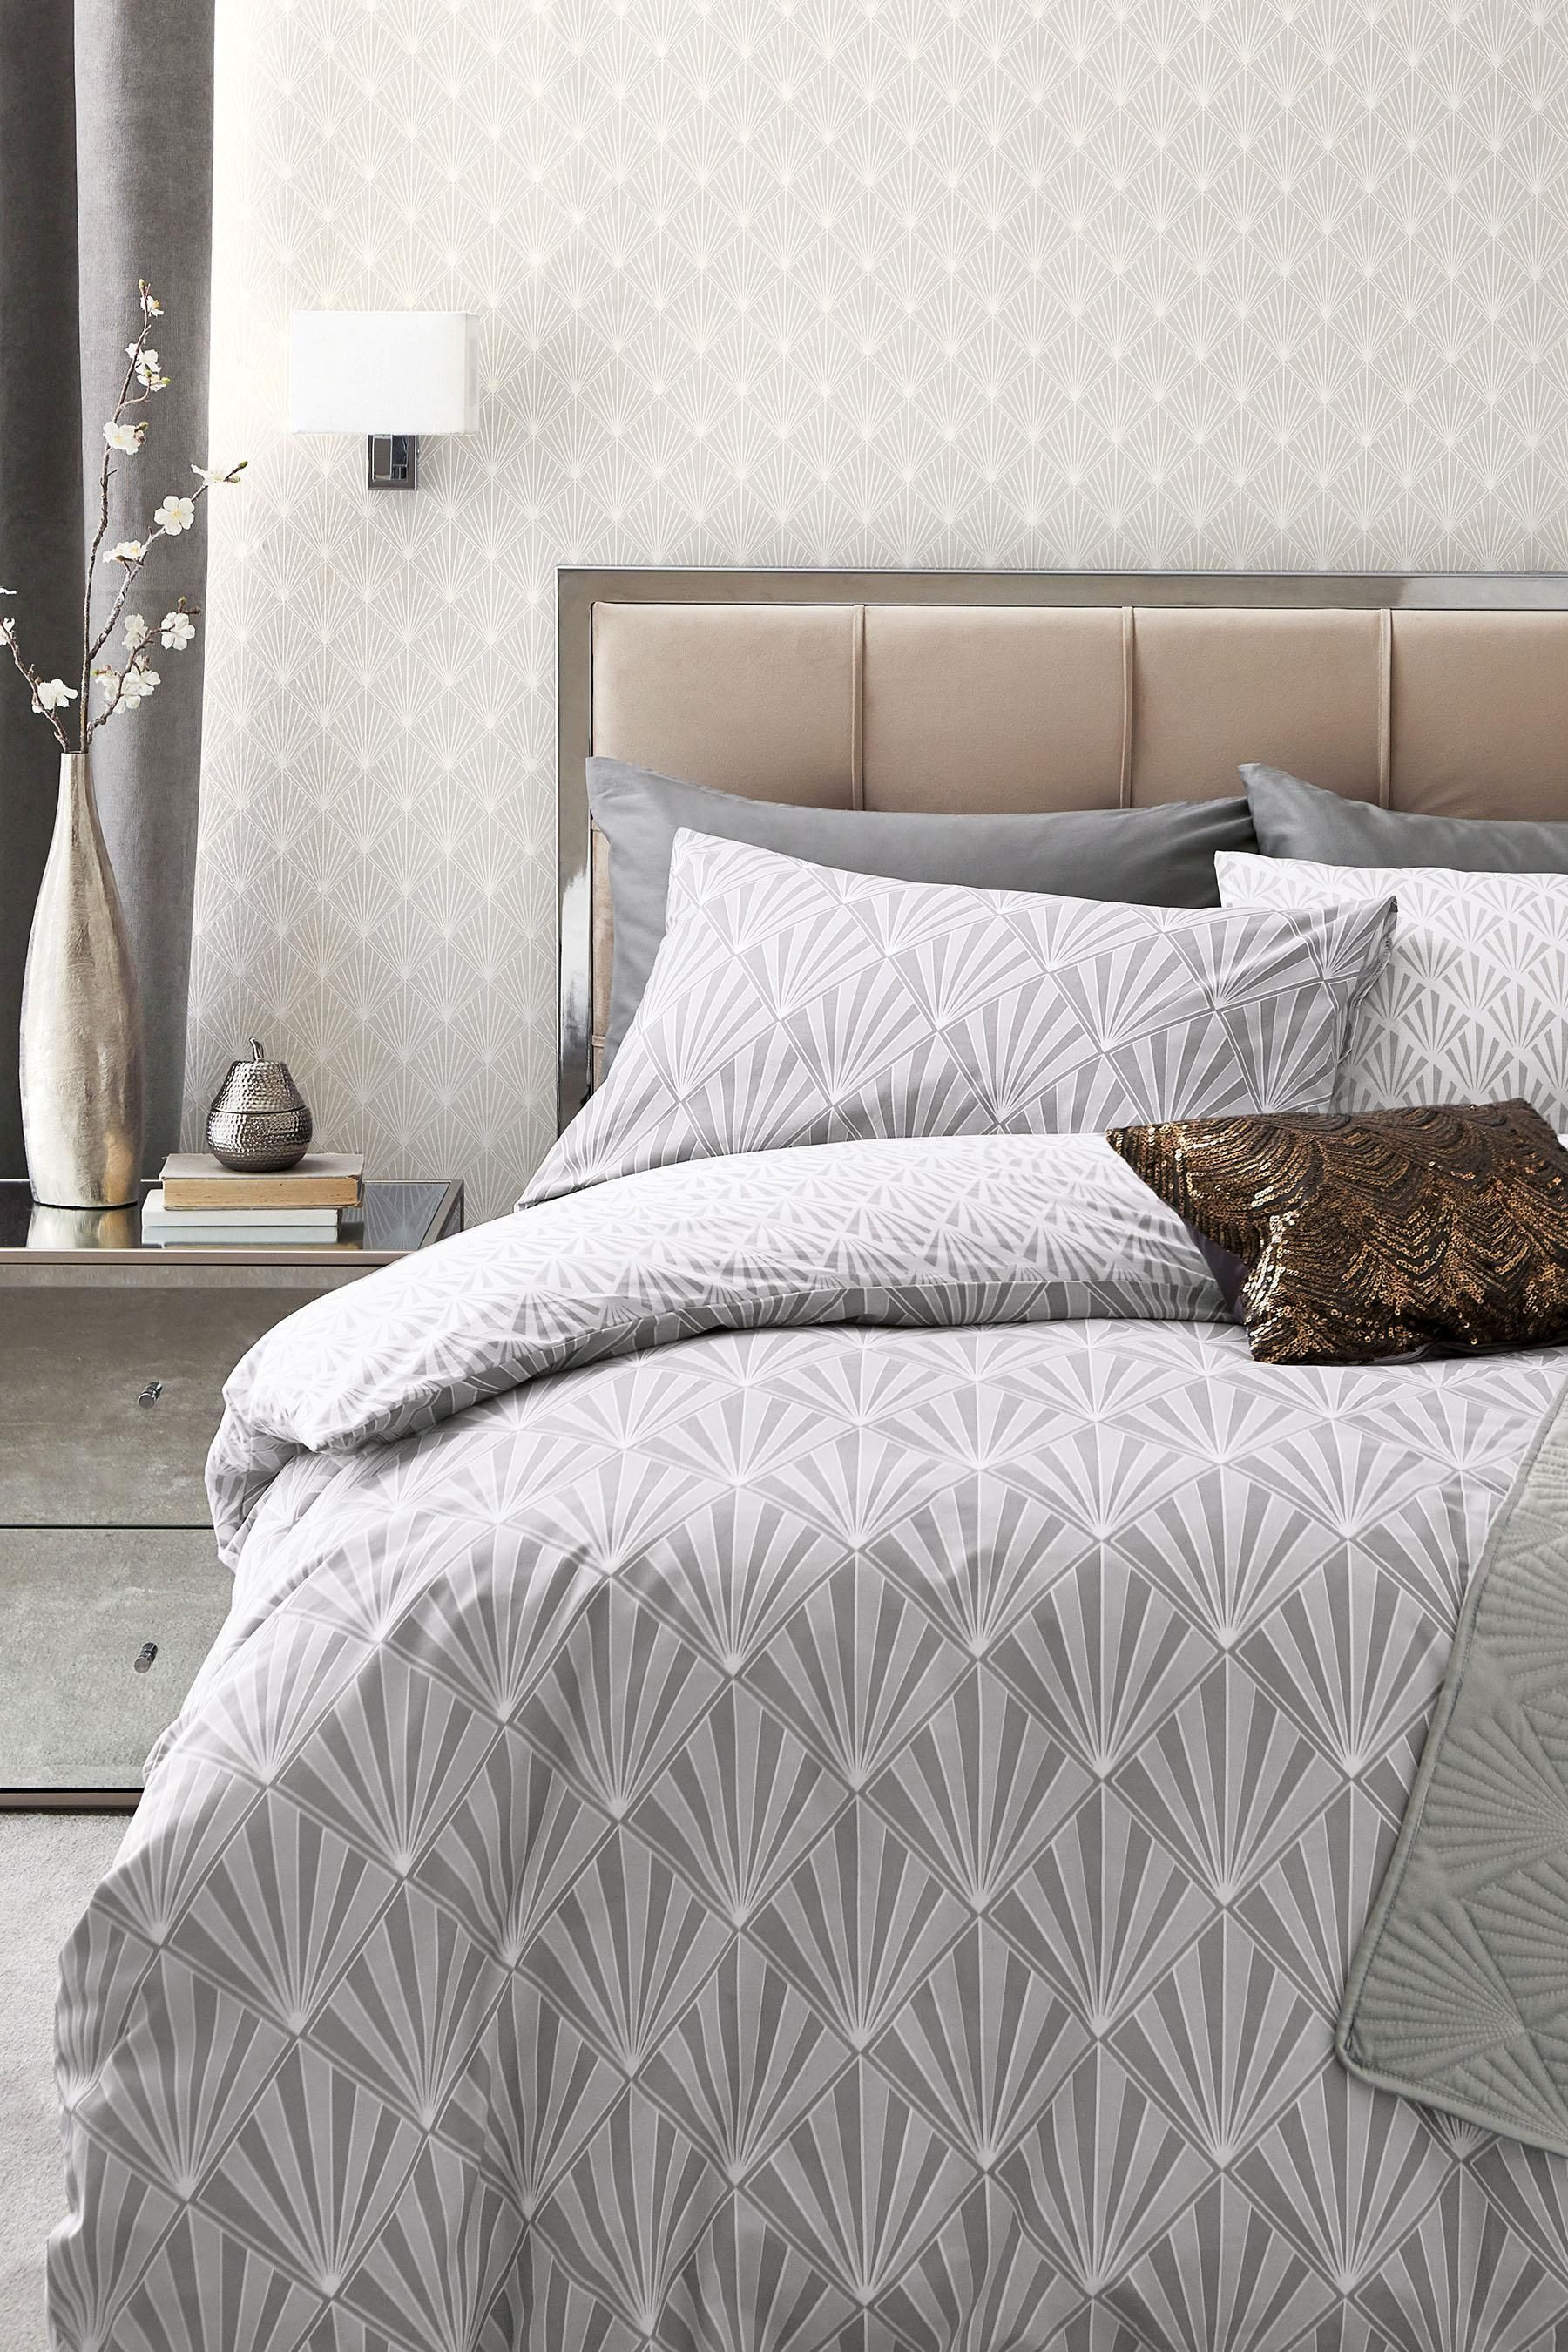 Buy Deco Fan Bed Set from the Next UK online shop